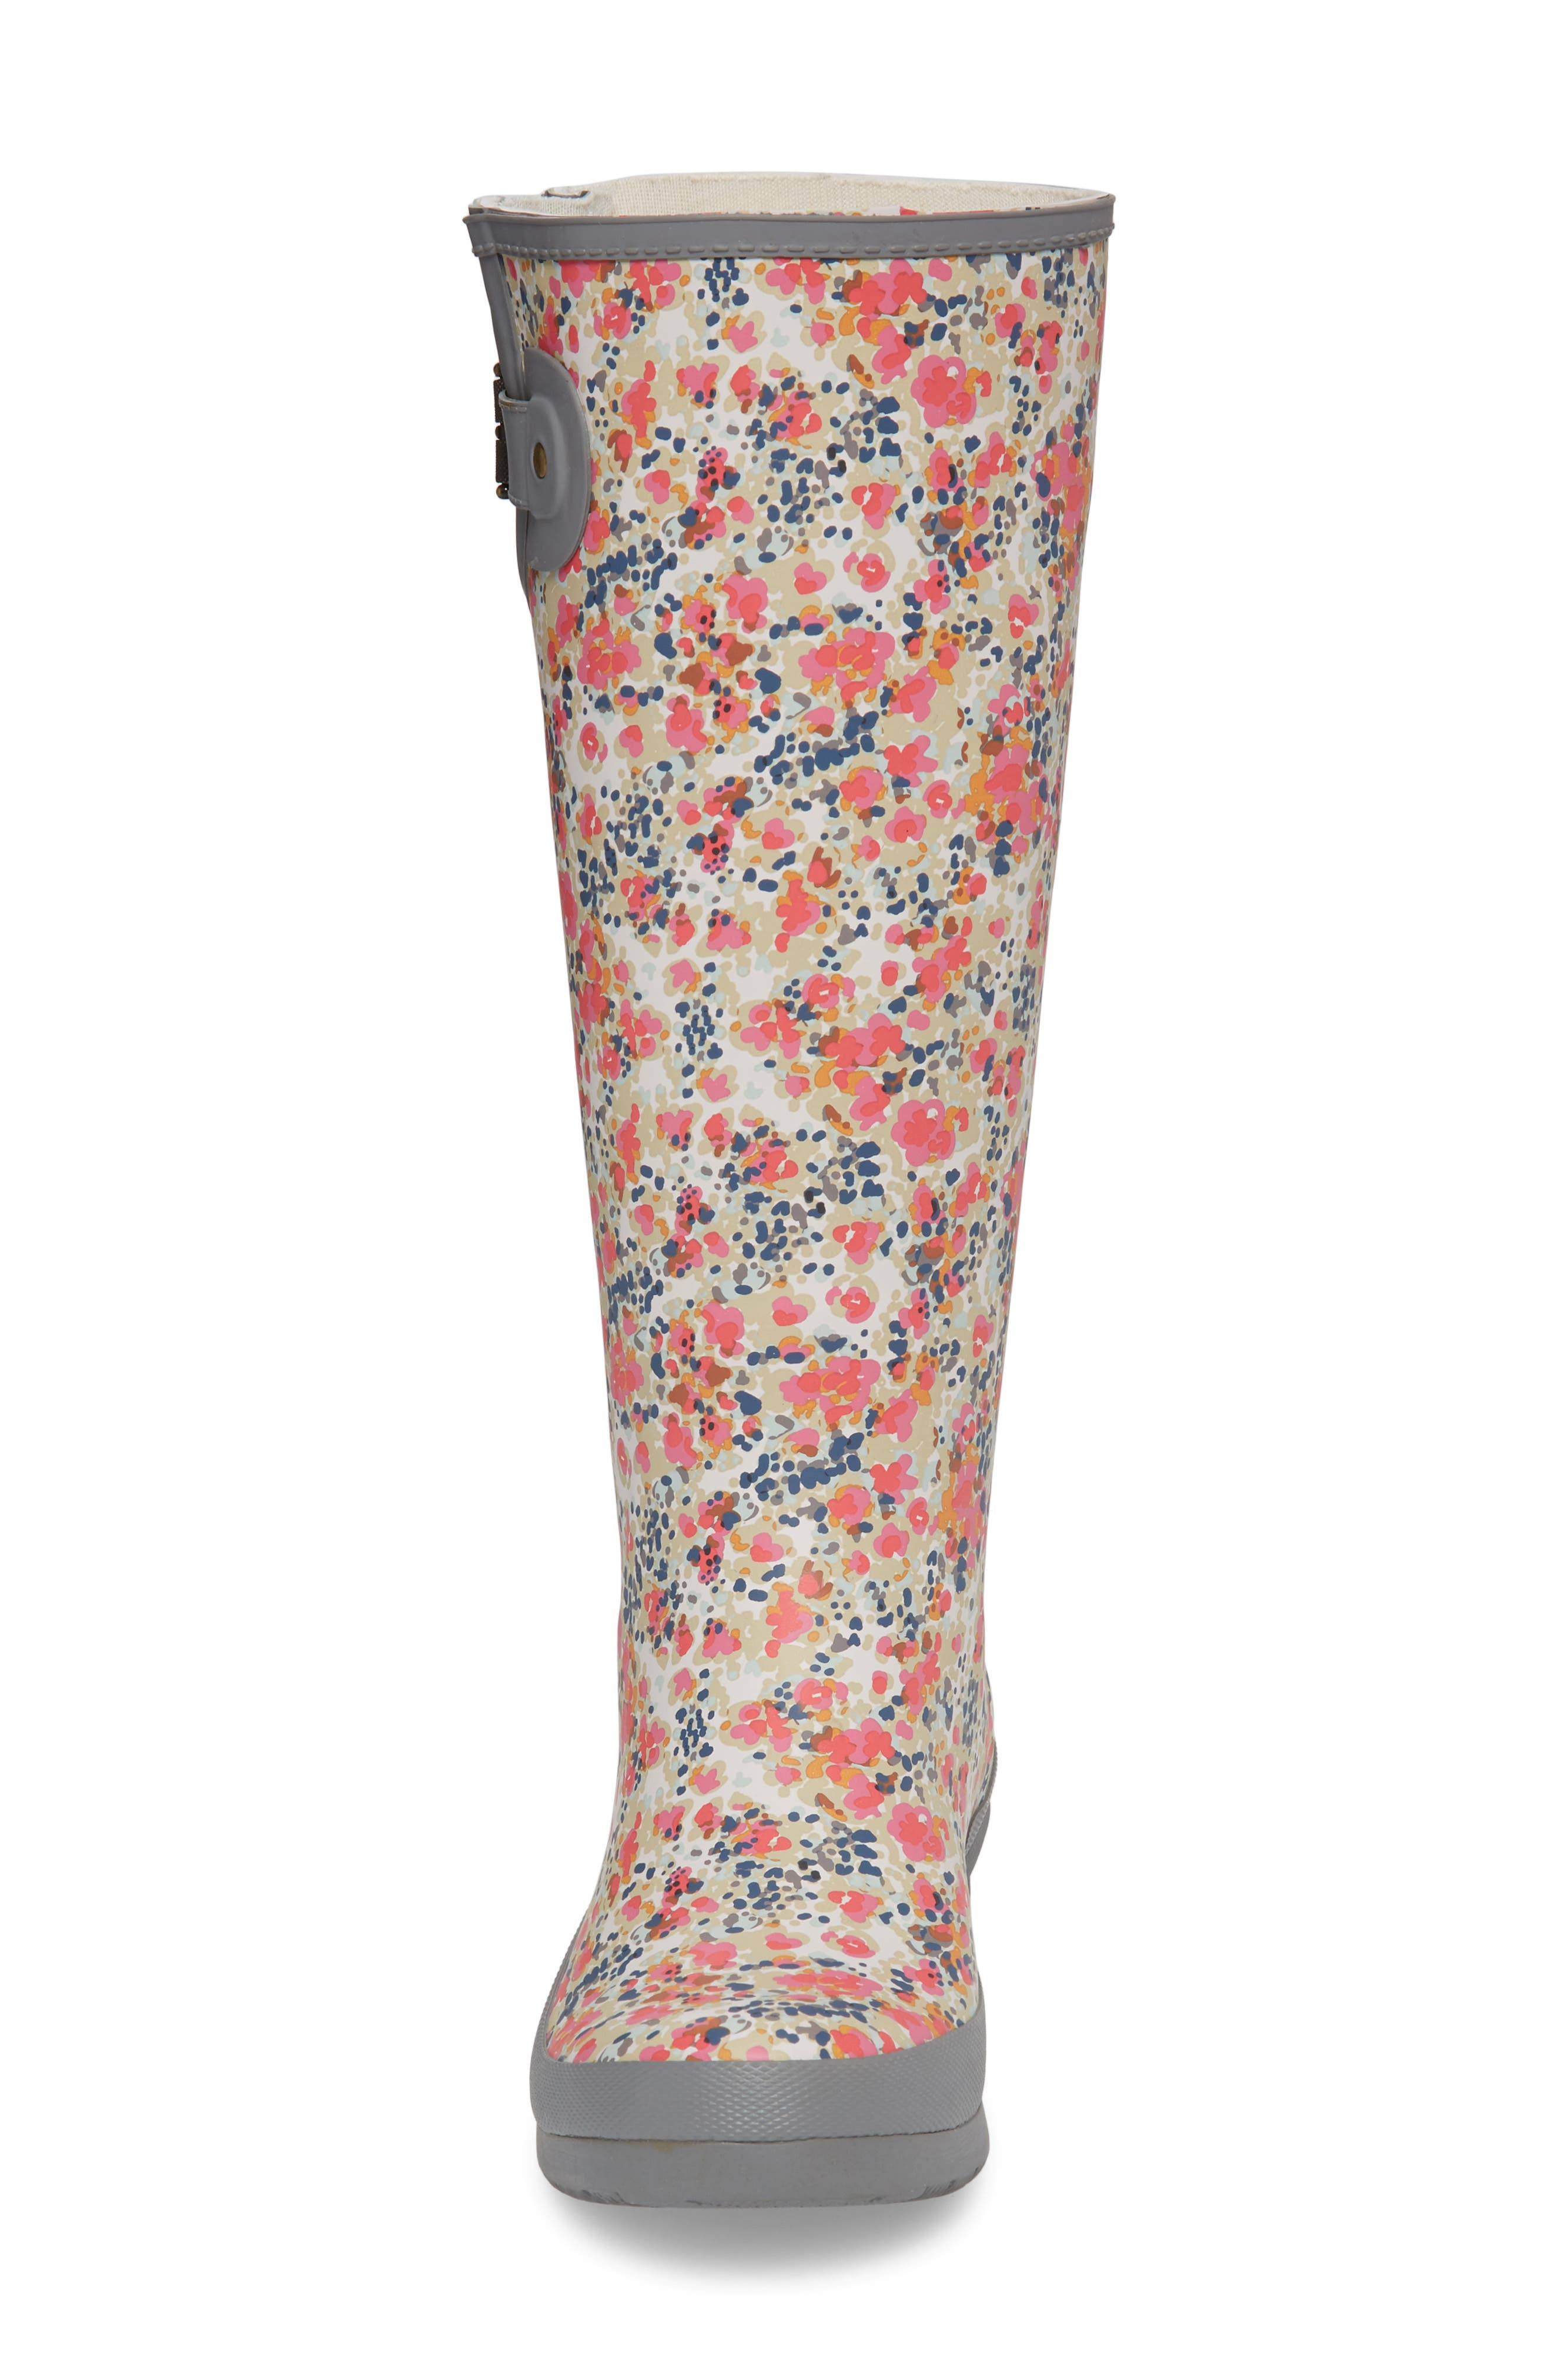 Julia Floral Waterproof Rain Boot,                             Alternate thumbnail 4, color,                             Gray